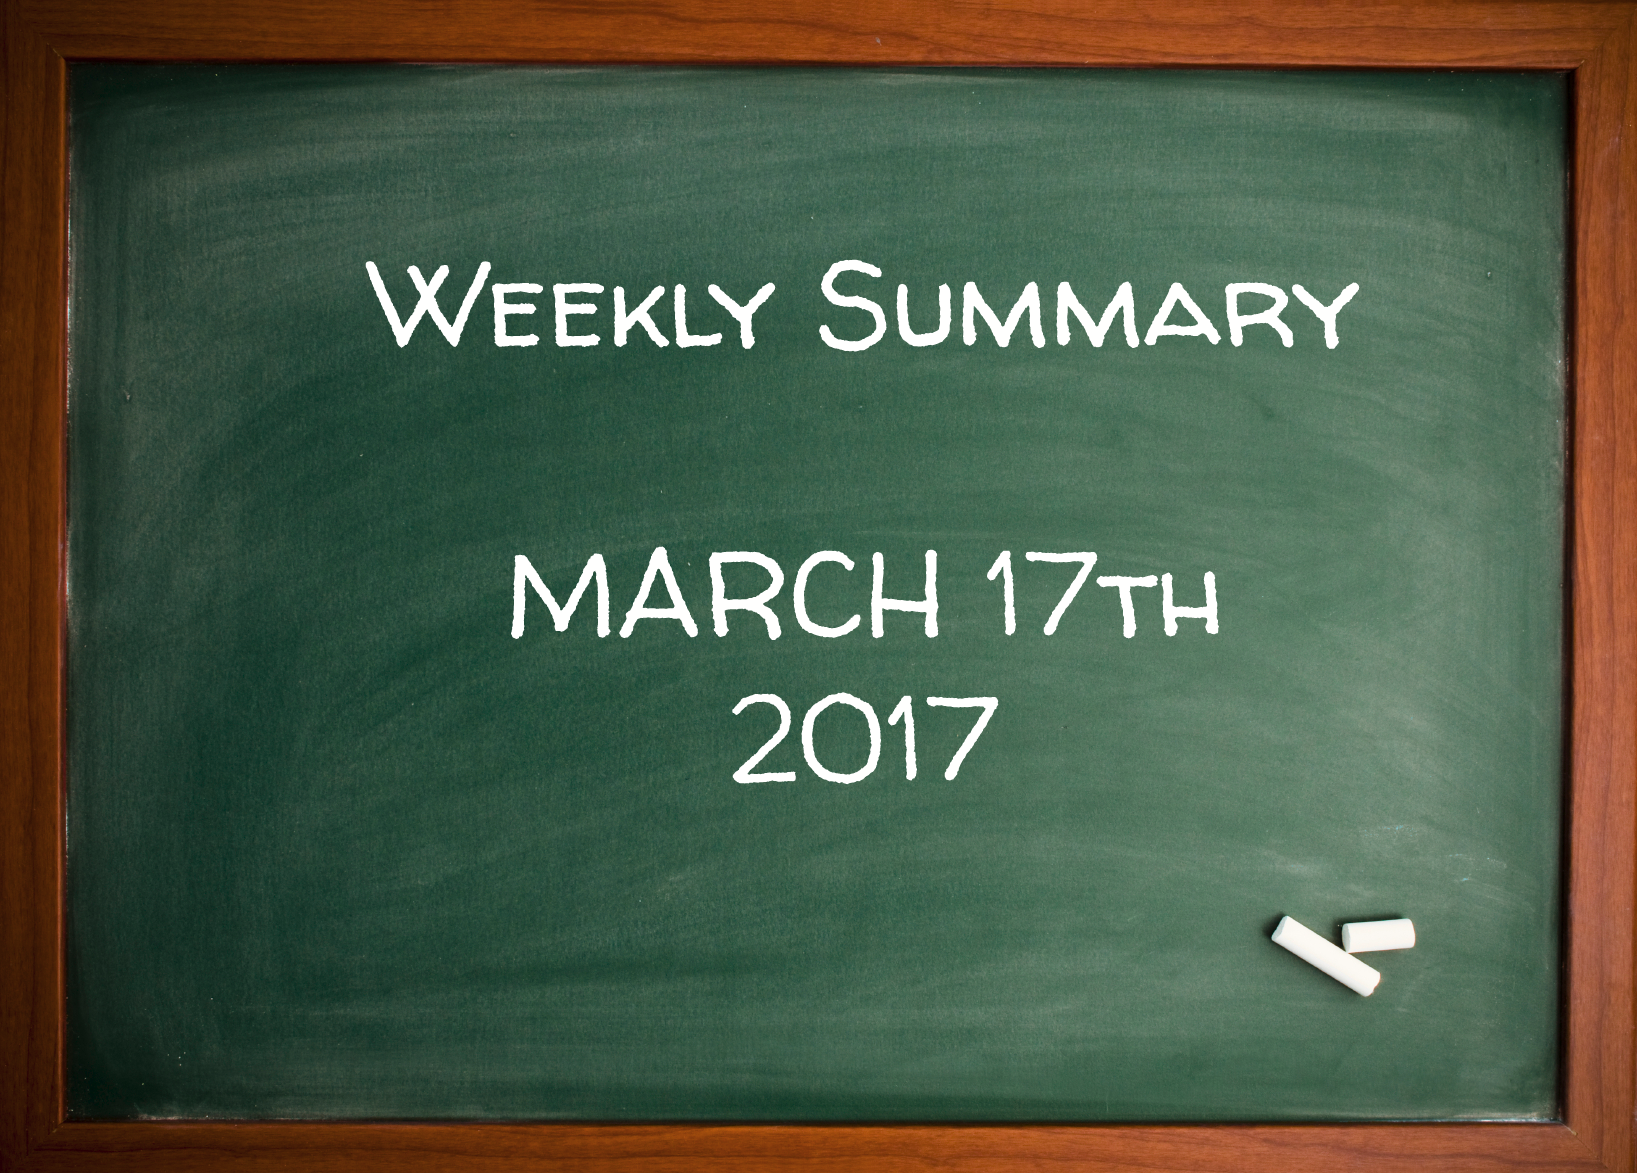 Weekly Summary March 17th 2017